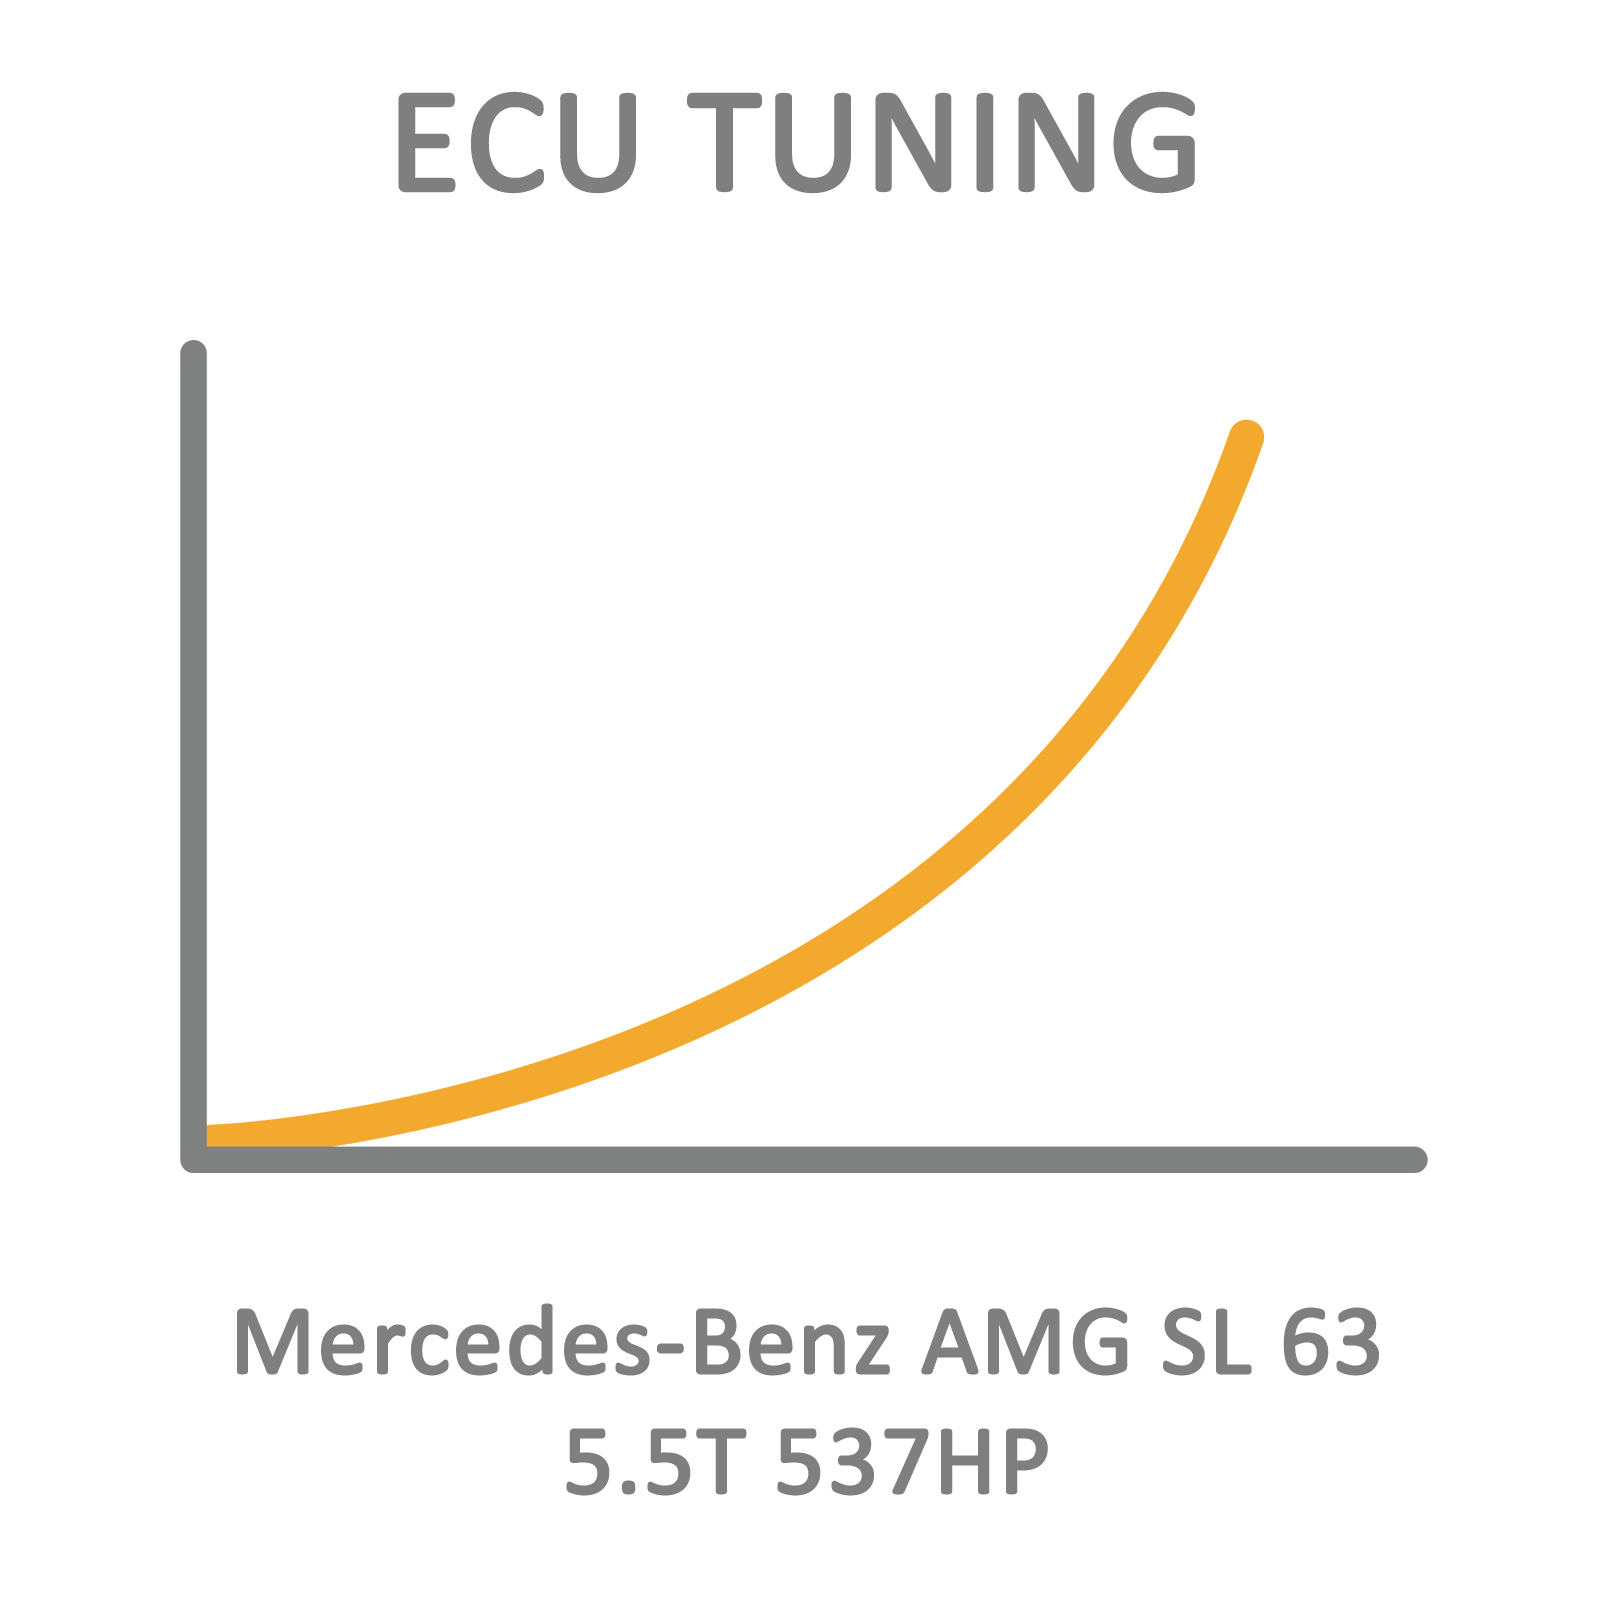 Mercedes-Benz AMG SL 63 5.5T 537HP ECU Tuning Remapping